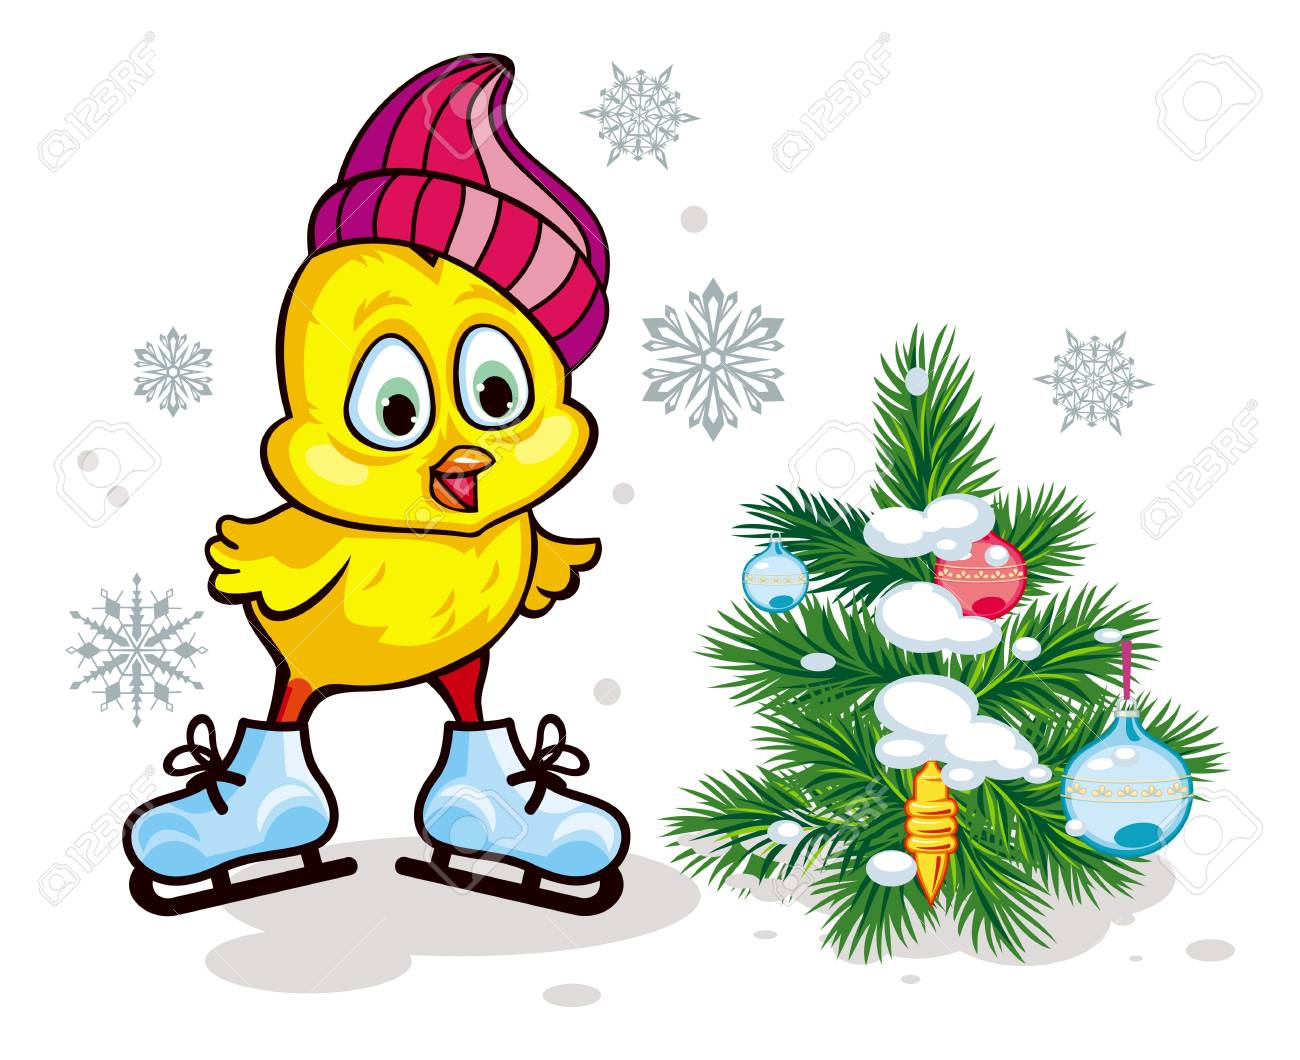 27039 Winter free clipart.